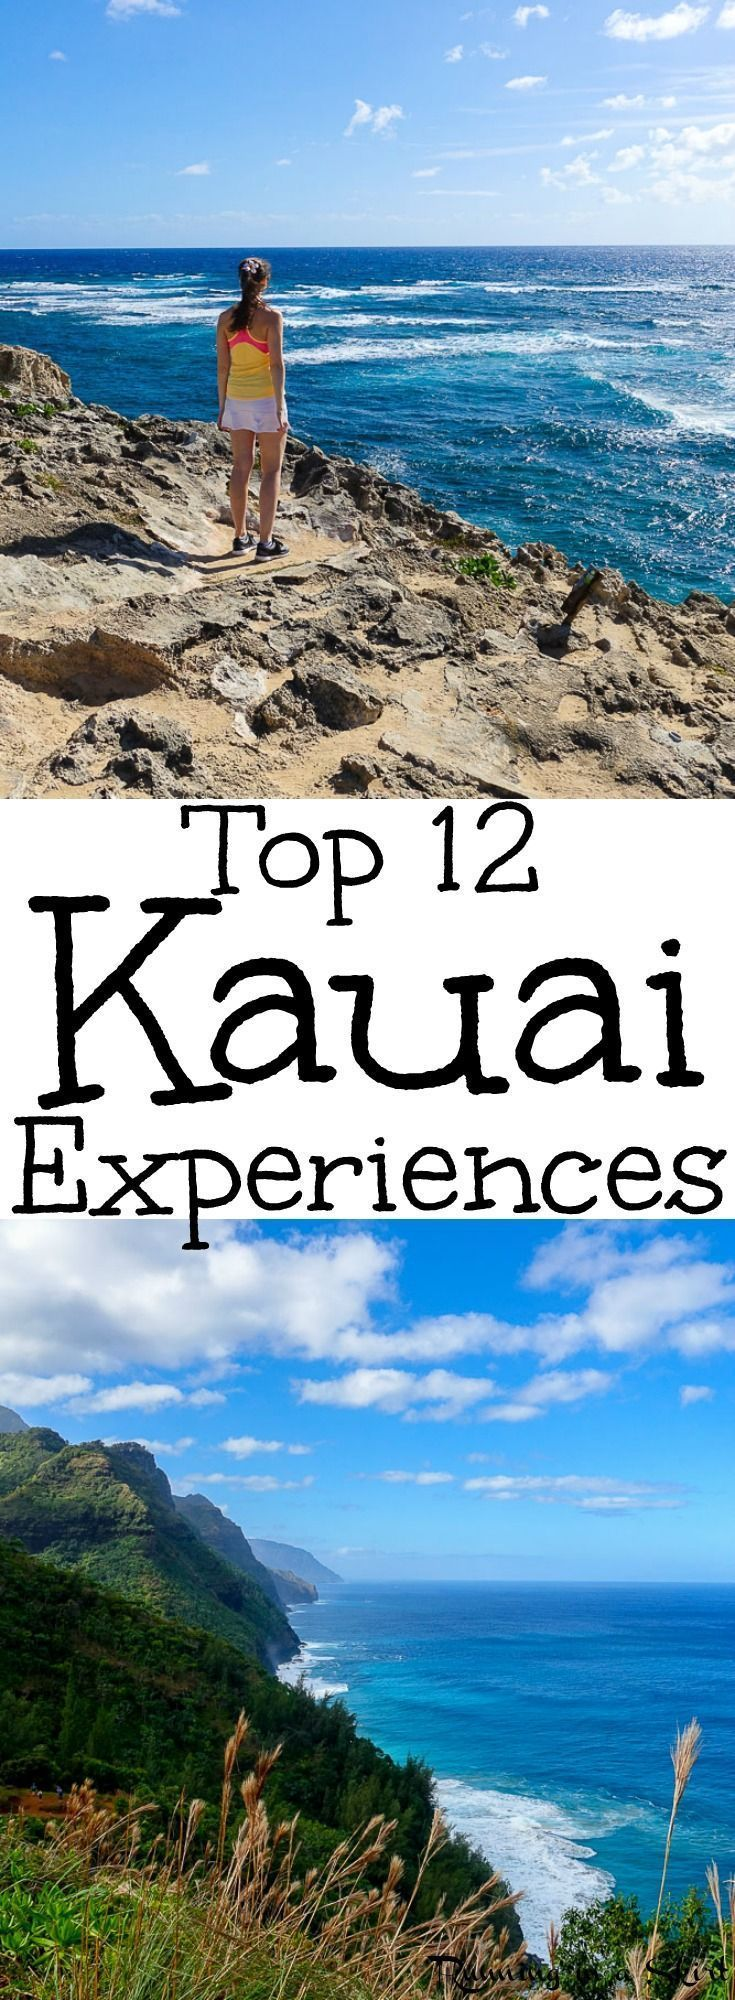 Top 12 Kauai Experiences - The BEST Things to Do in Kauai, Hawaii. From hiking, waterfalls, can't miss activities, food, restaurants, the best Luau, farmers markets, beaches, helicopter tour and resorts... these are adventures you must do while on the island.  / Running in a Skirt